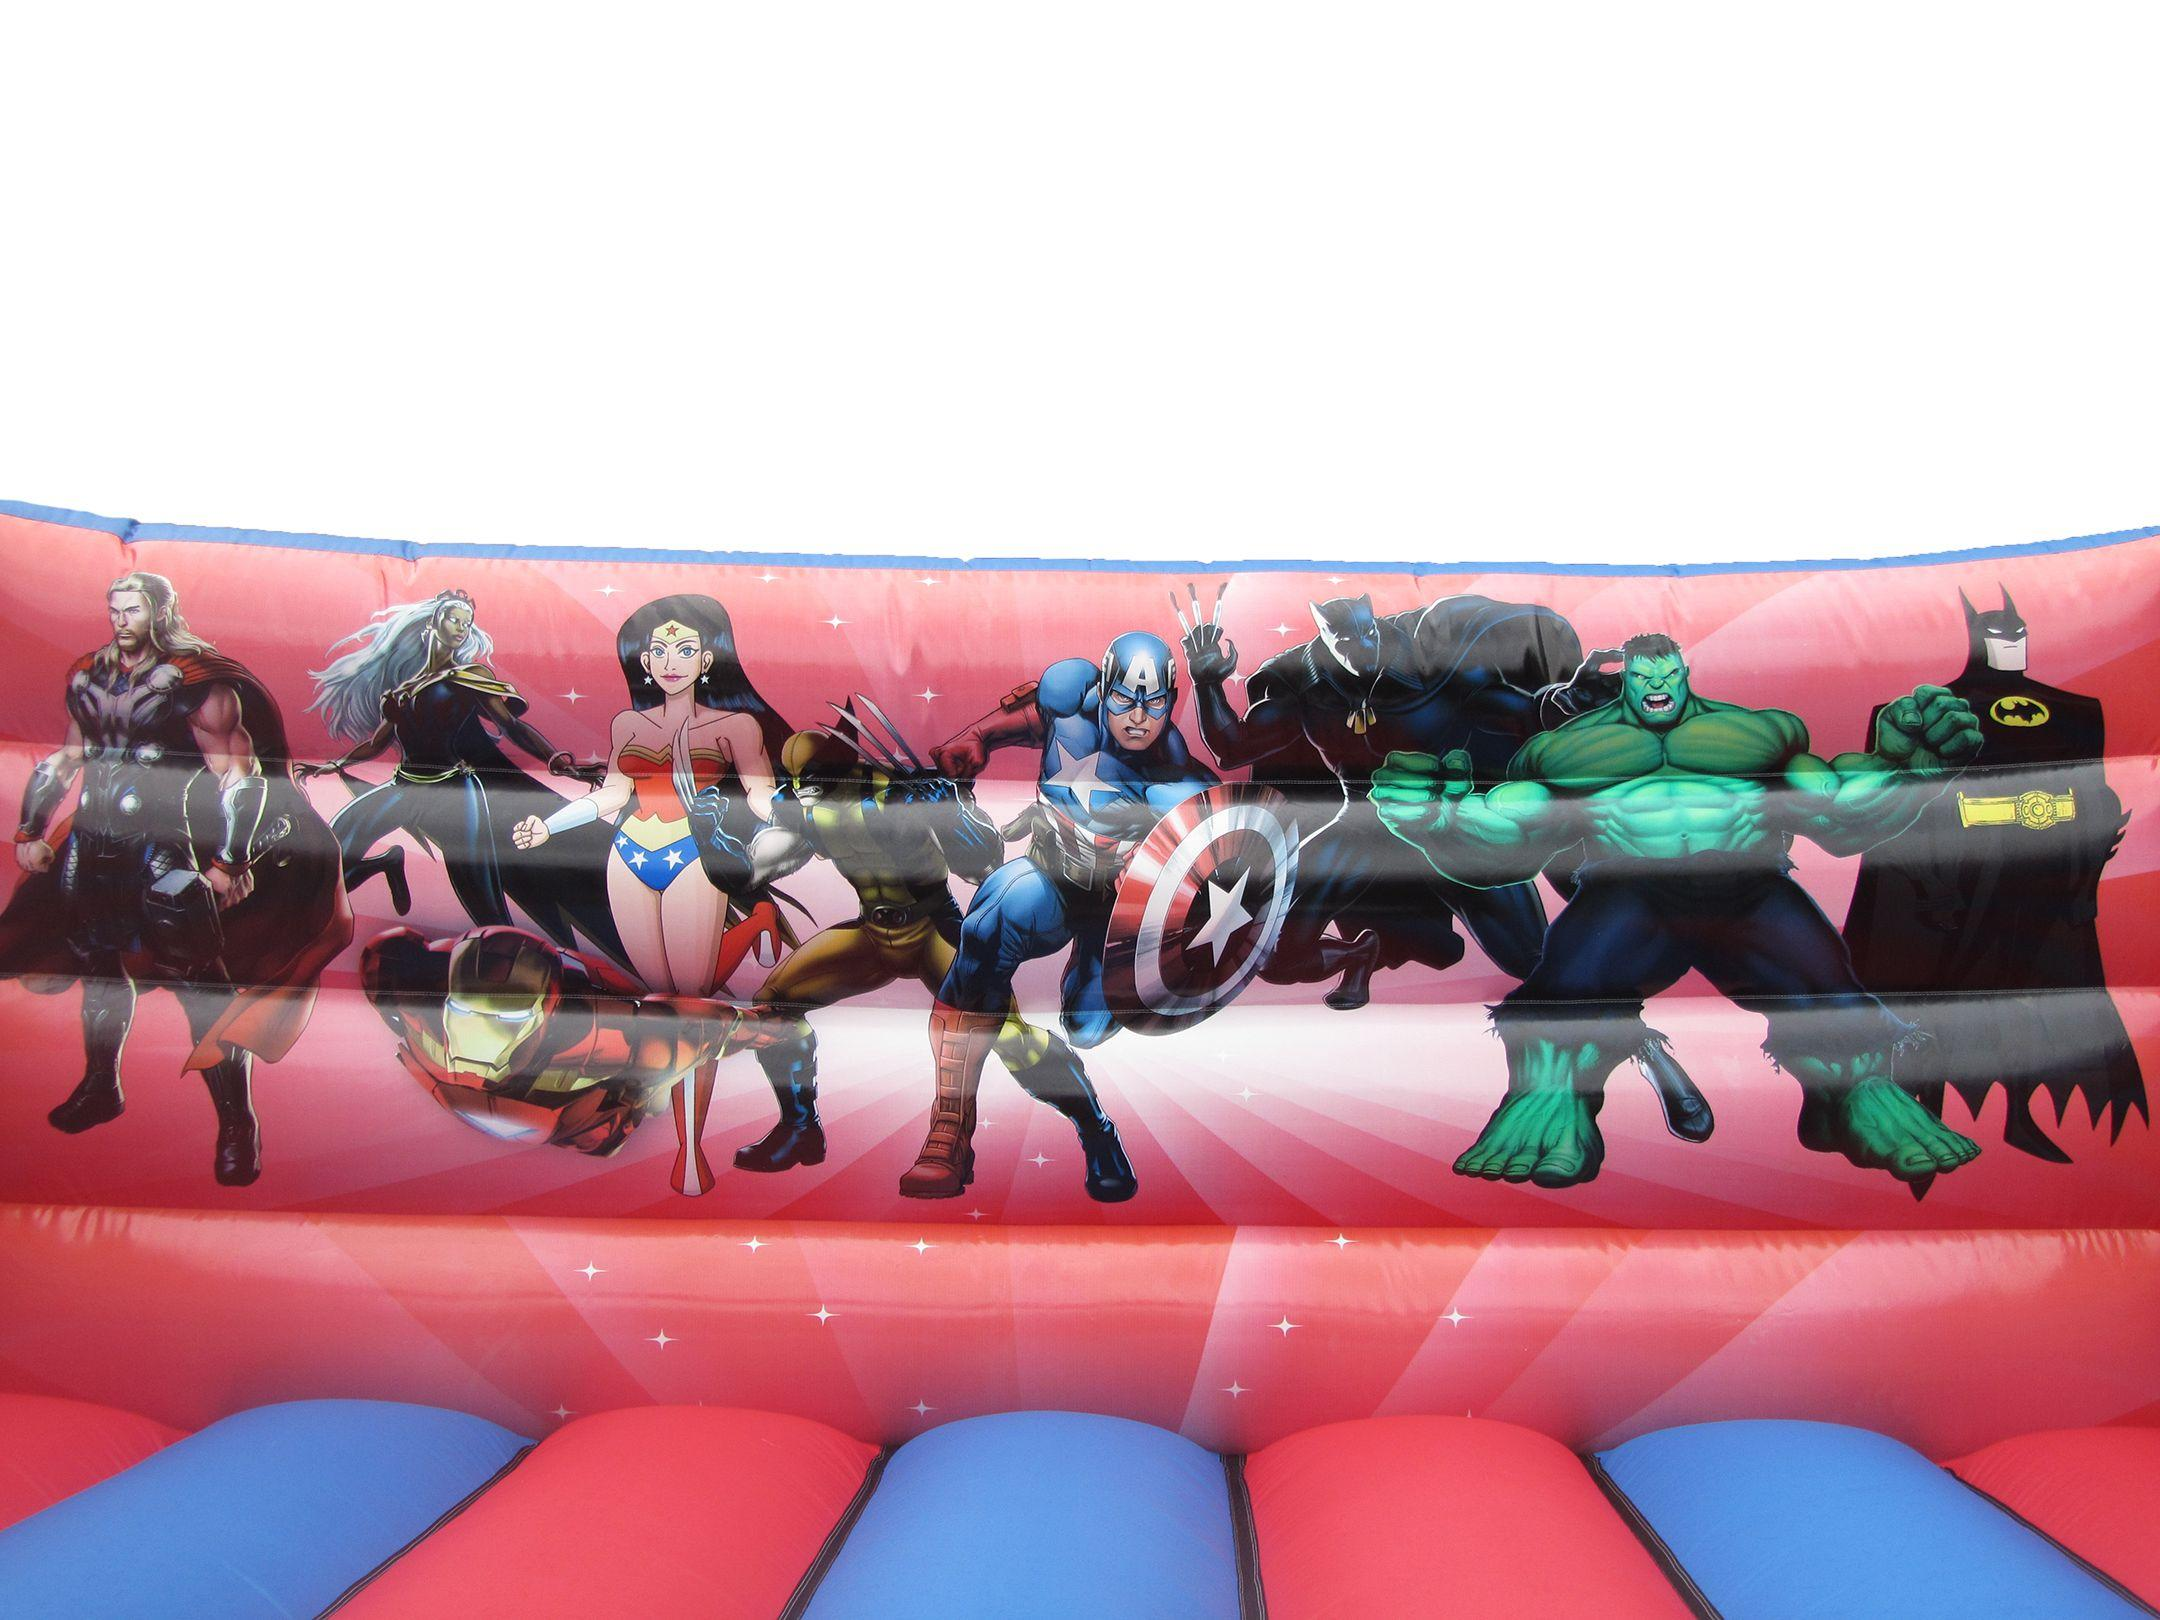 Superhero Artwork on Adults Bouncy Castle